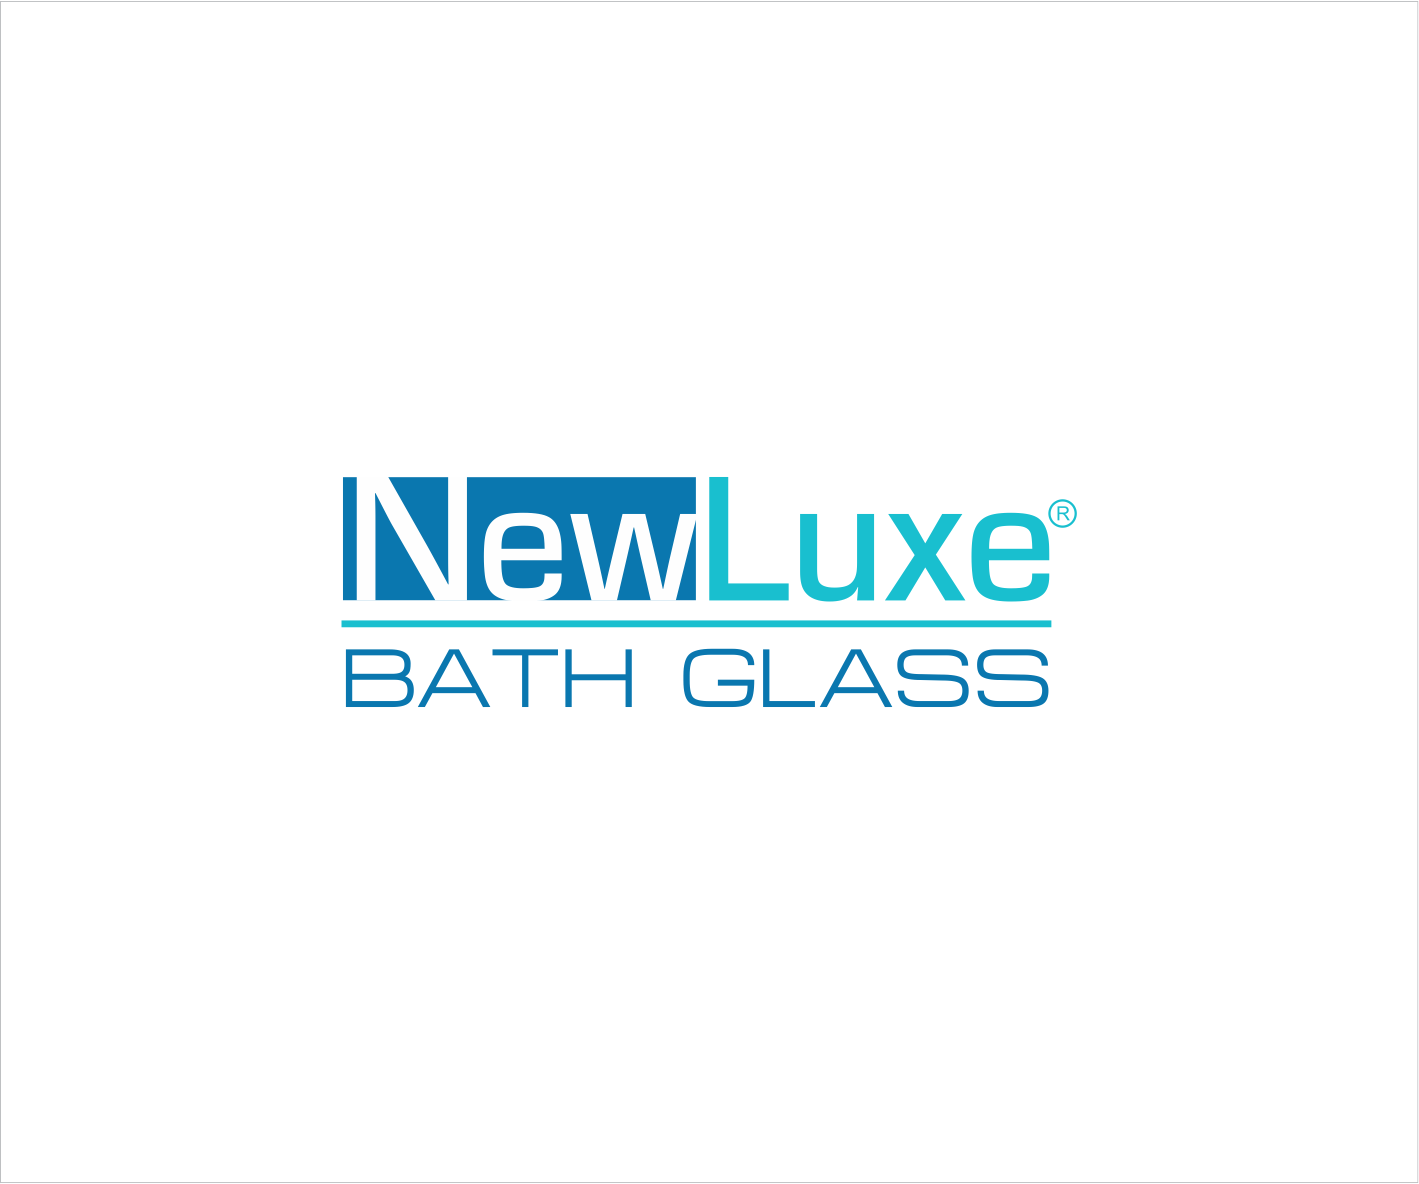 logo design by diana999 for niche glass company needs a logo design 12613236 - Mirrorcle Frames